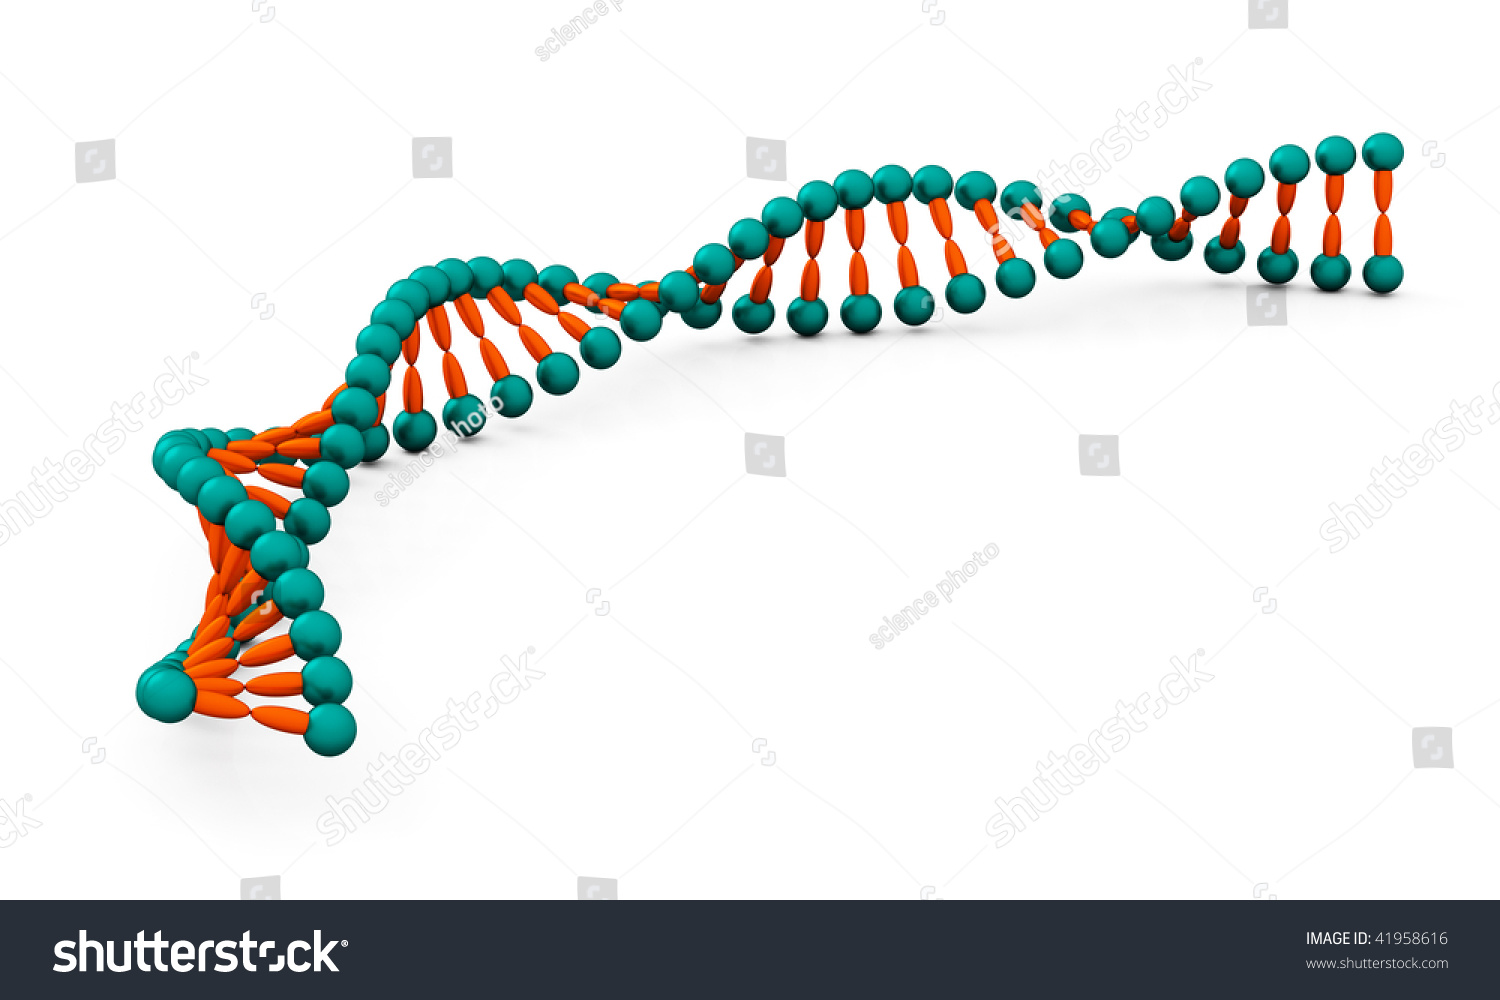 how to make a dna molecule model